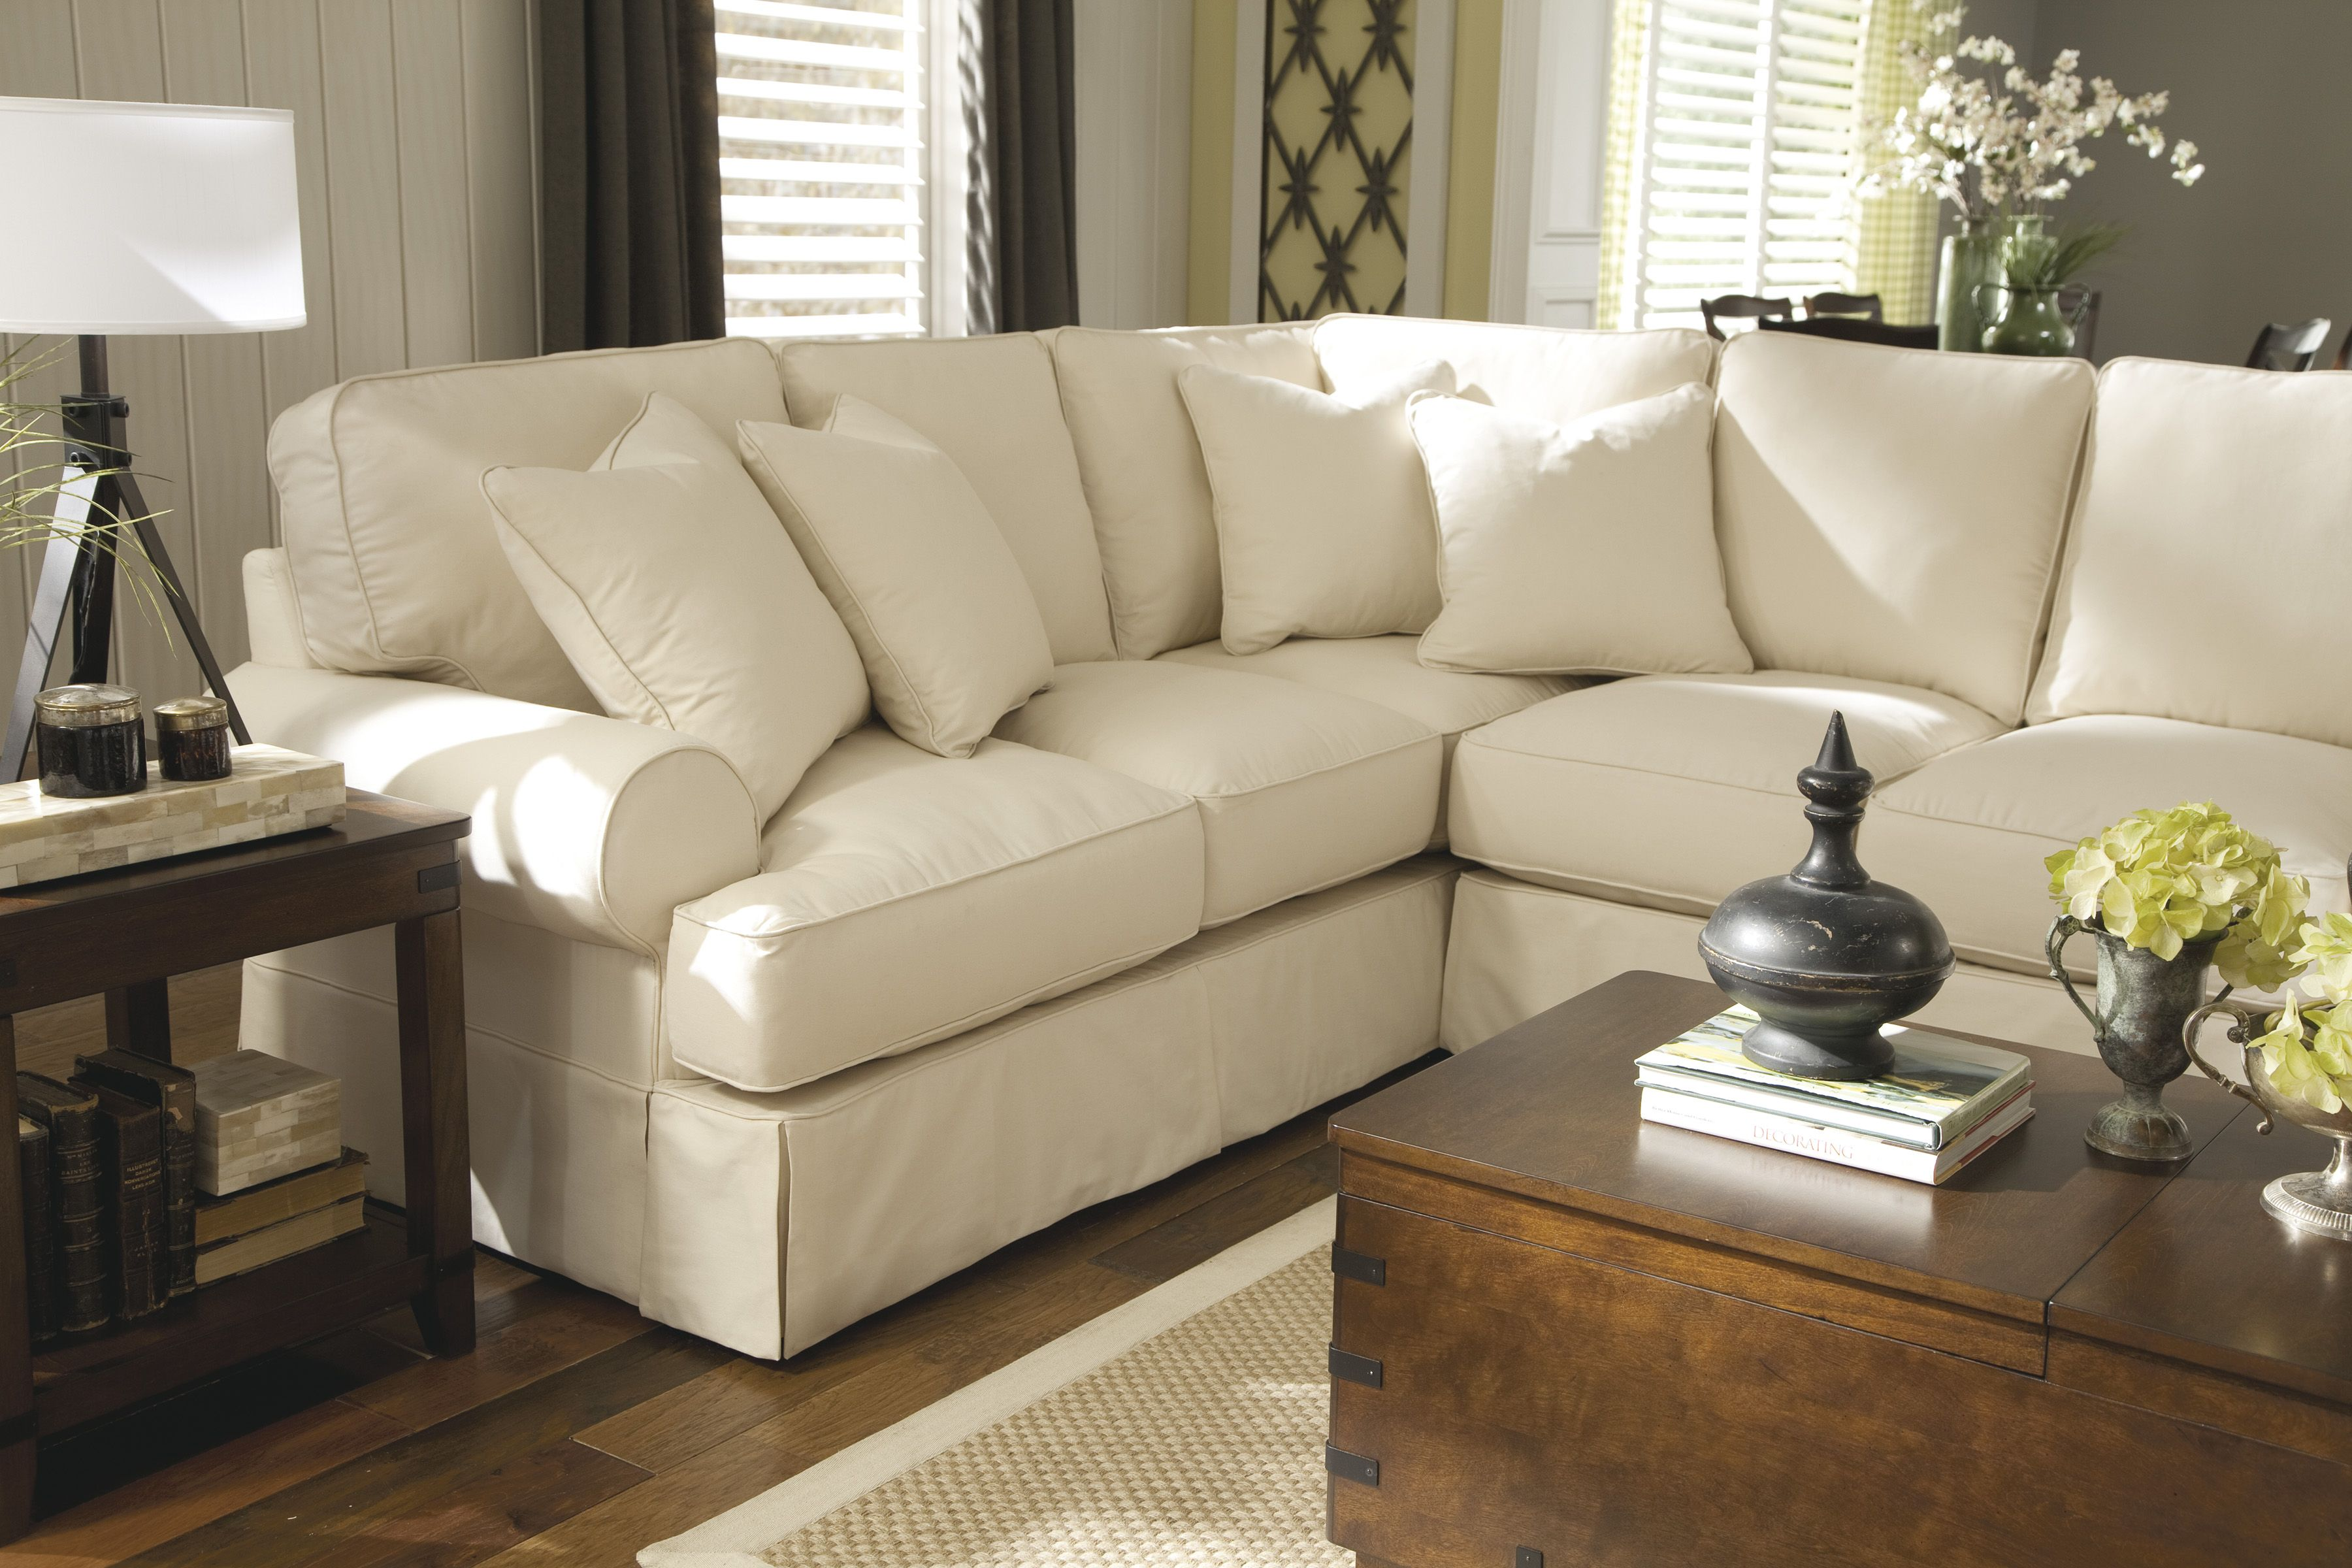 Ashley Furniture sofa sectional couch pillow cushion lamp